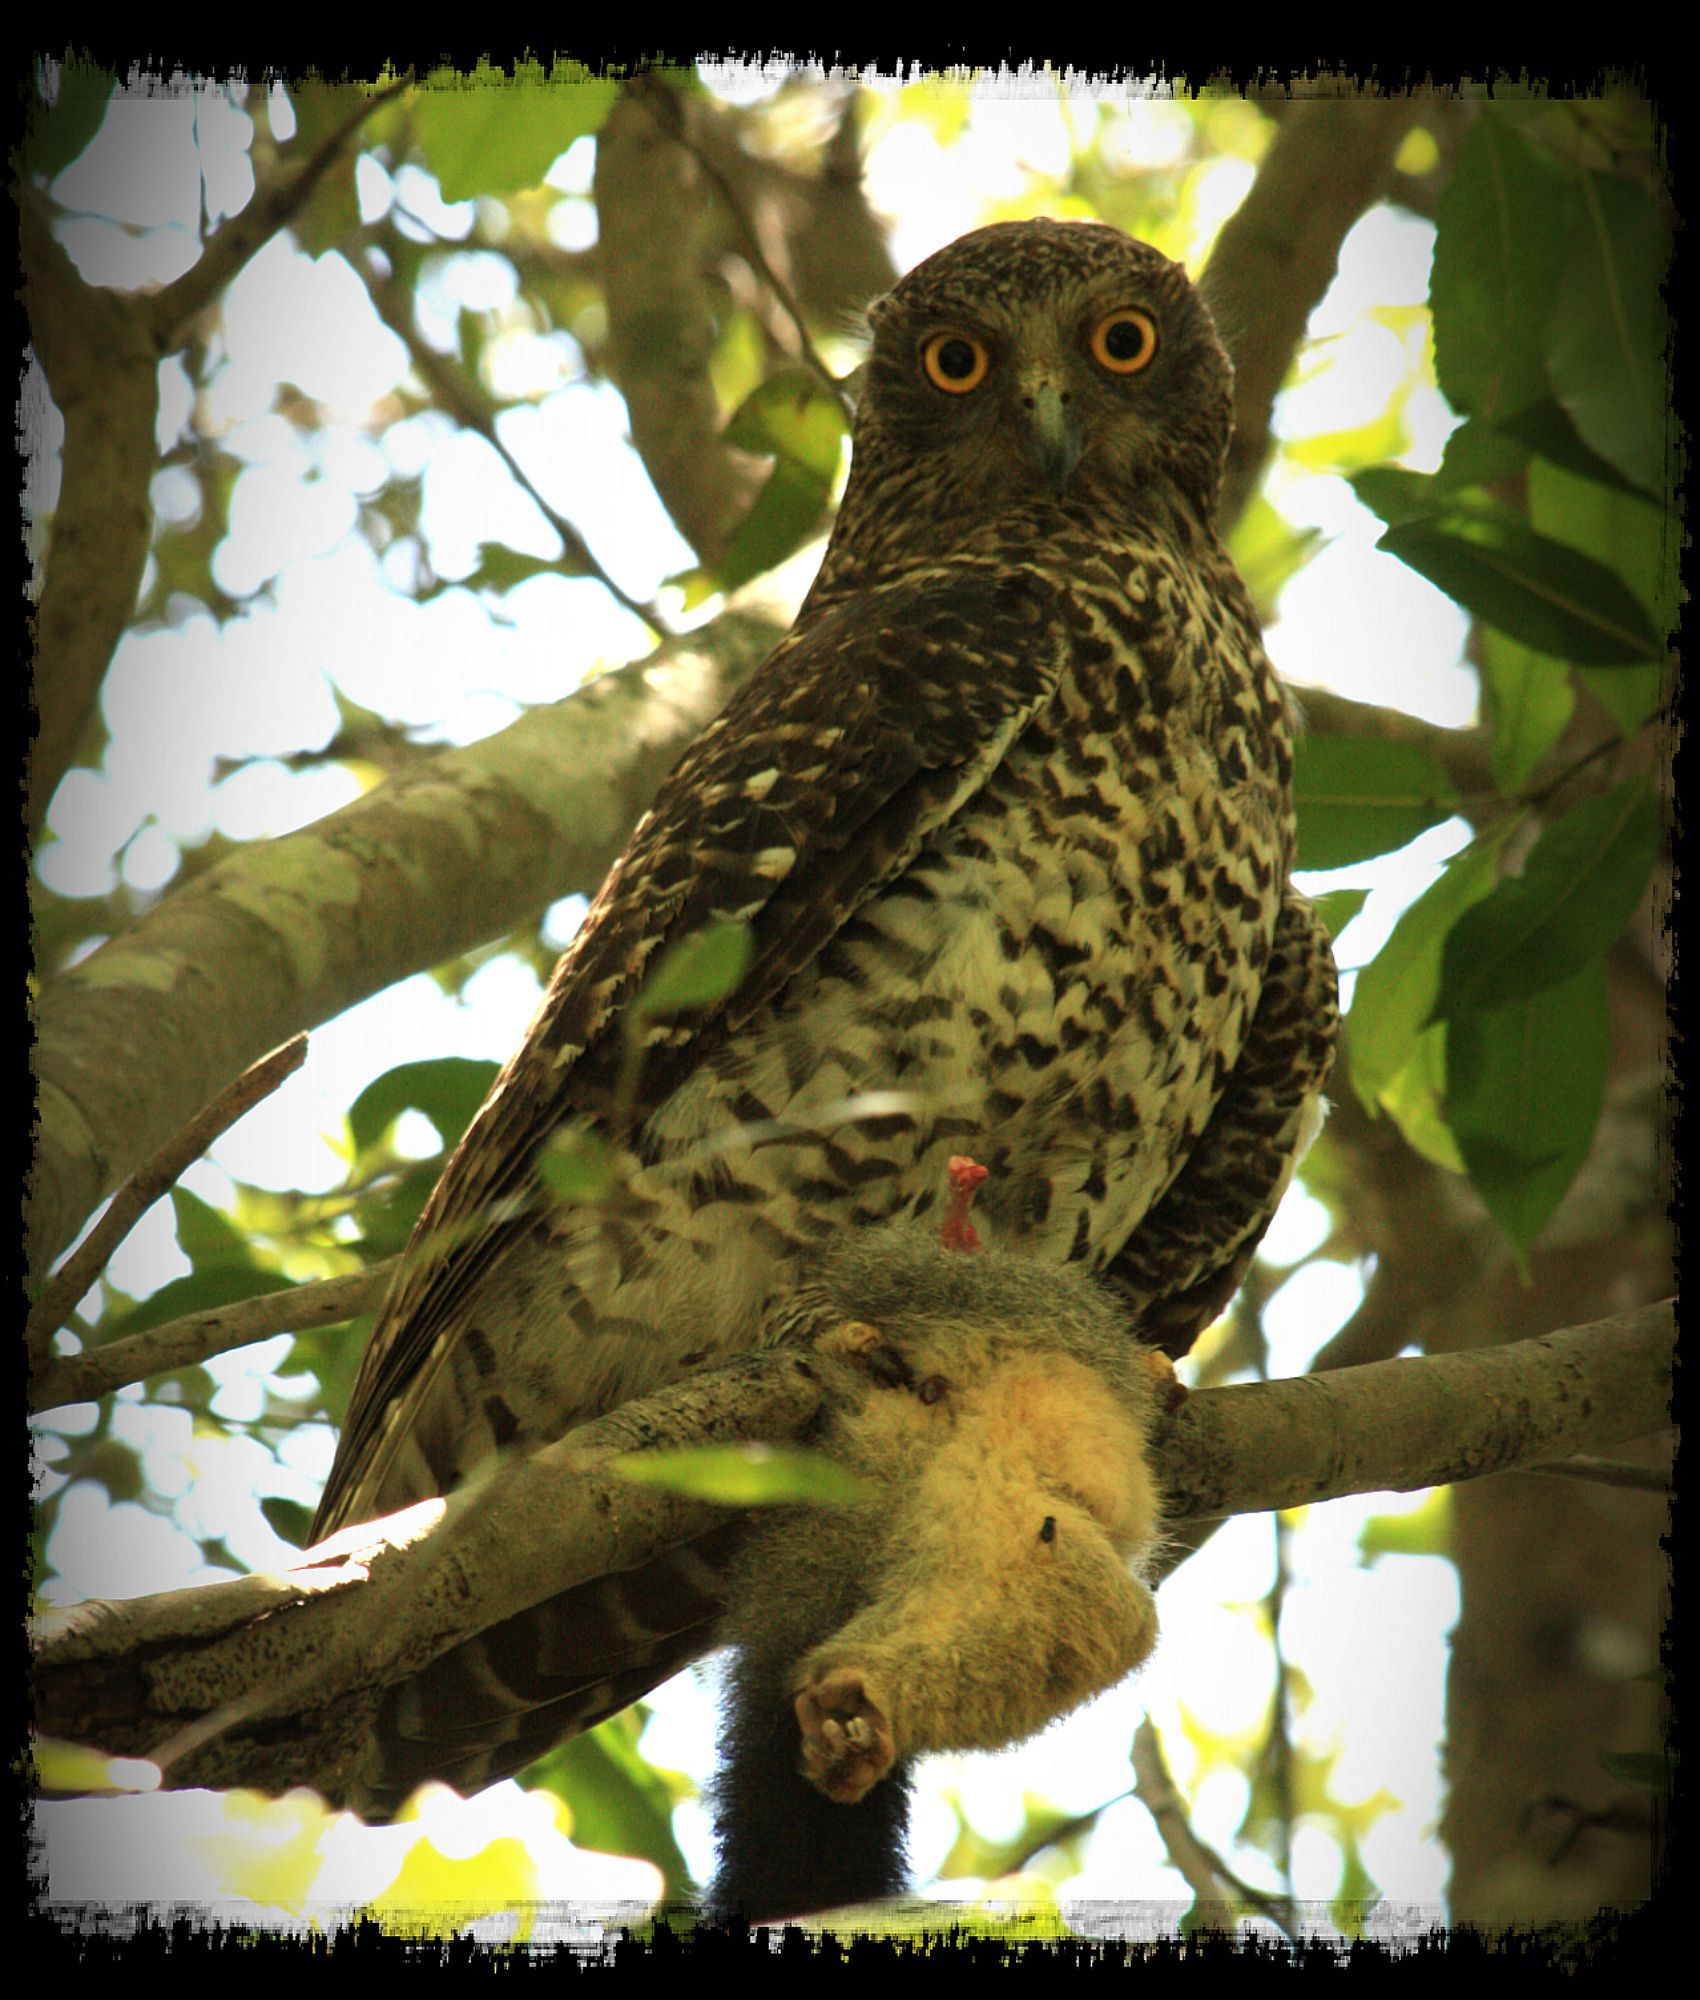 Powerful Owl Sydney Bush Land With Remains Of Possum Kill Owl Creatures Animals